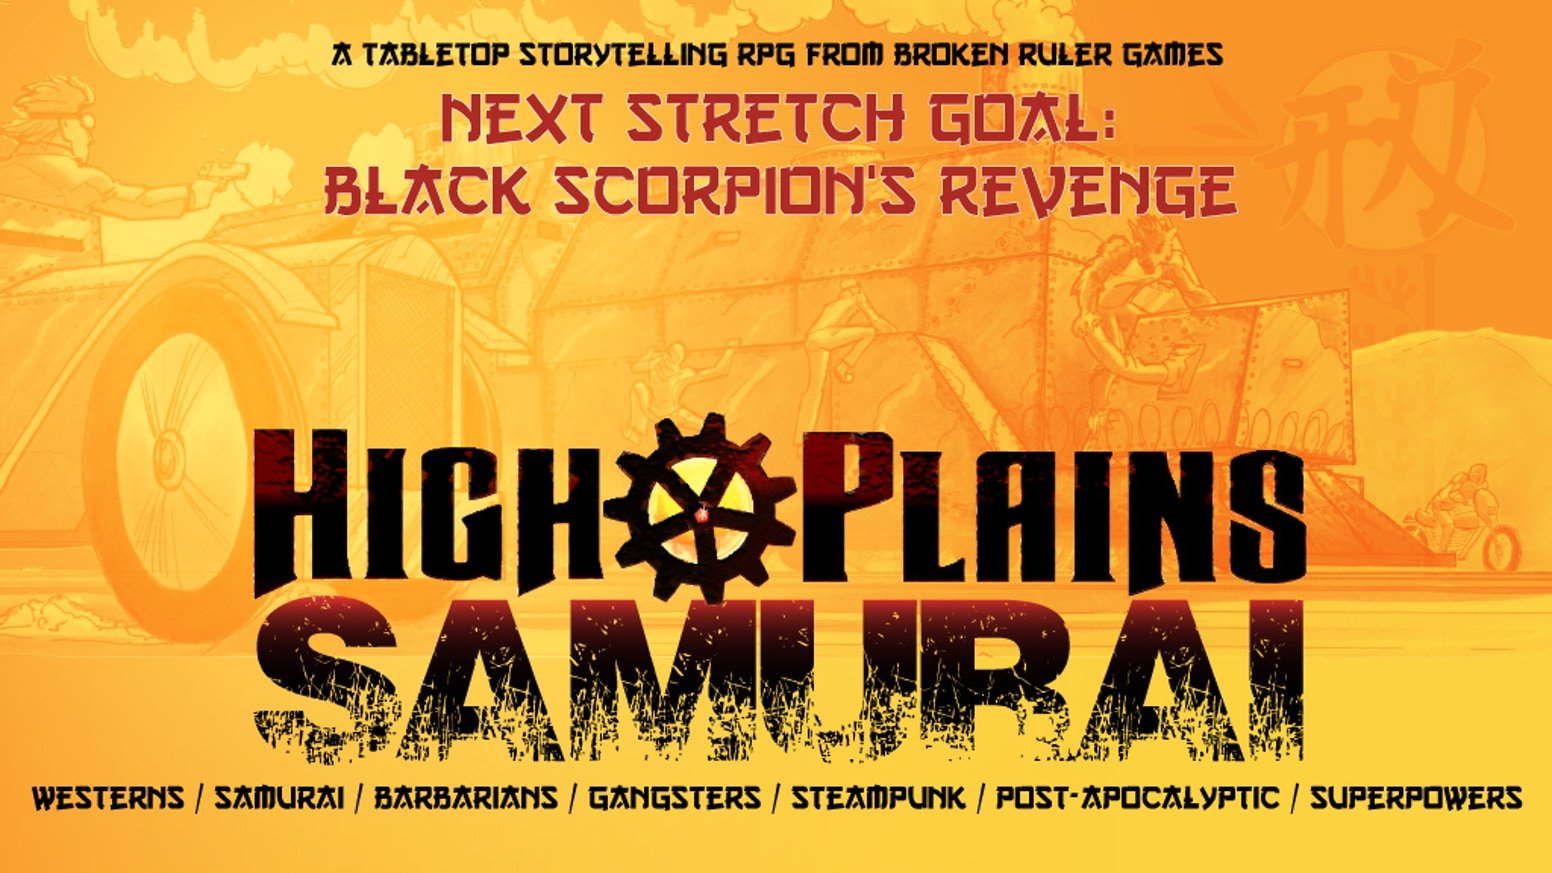 An action-heavy tabletop RPG of gunslingers, samurai, gangsters, barbarians, steampunk, and superpowers on the brink of destruction.